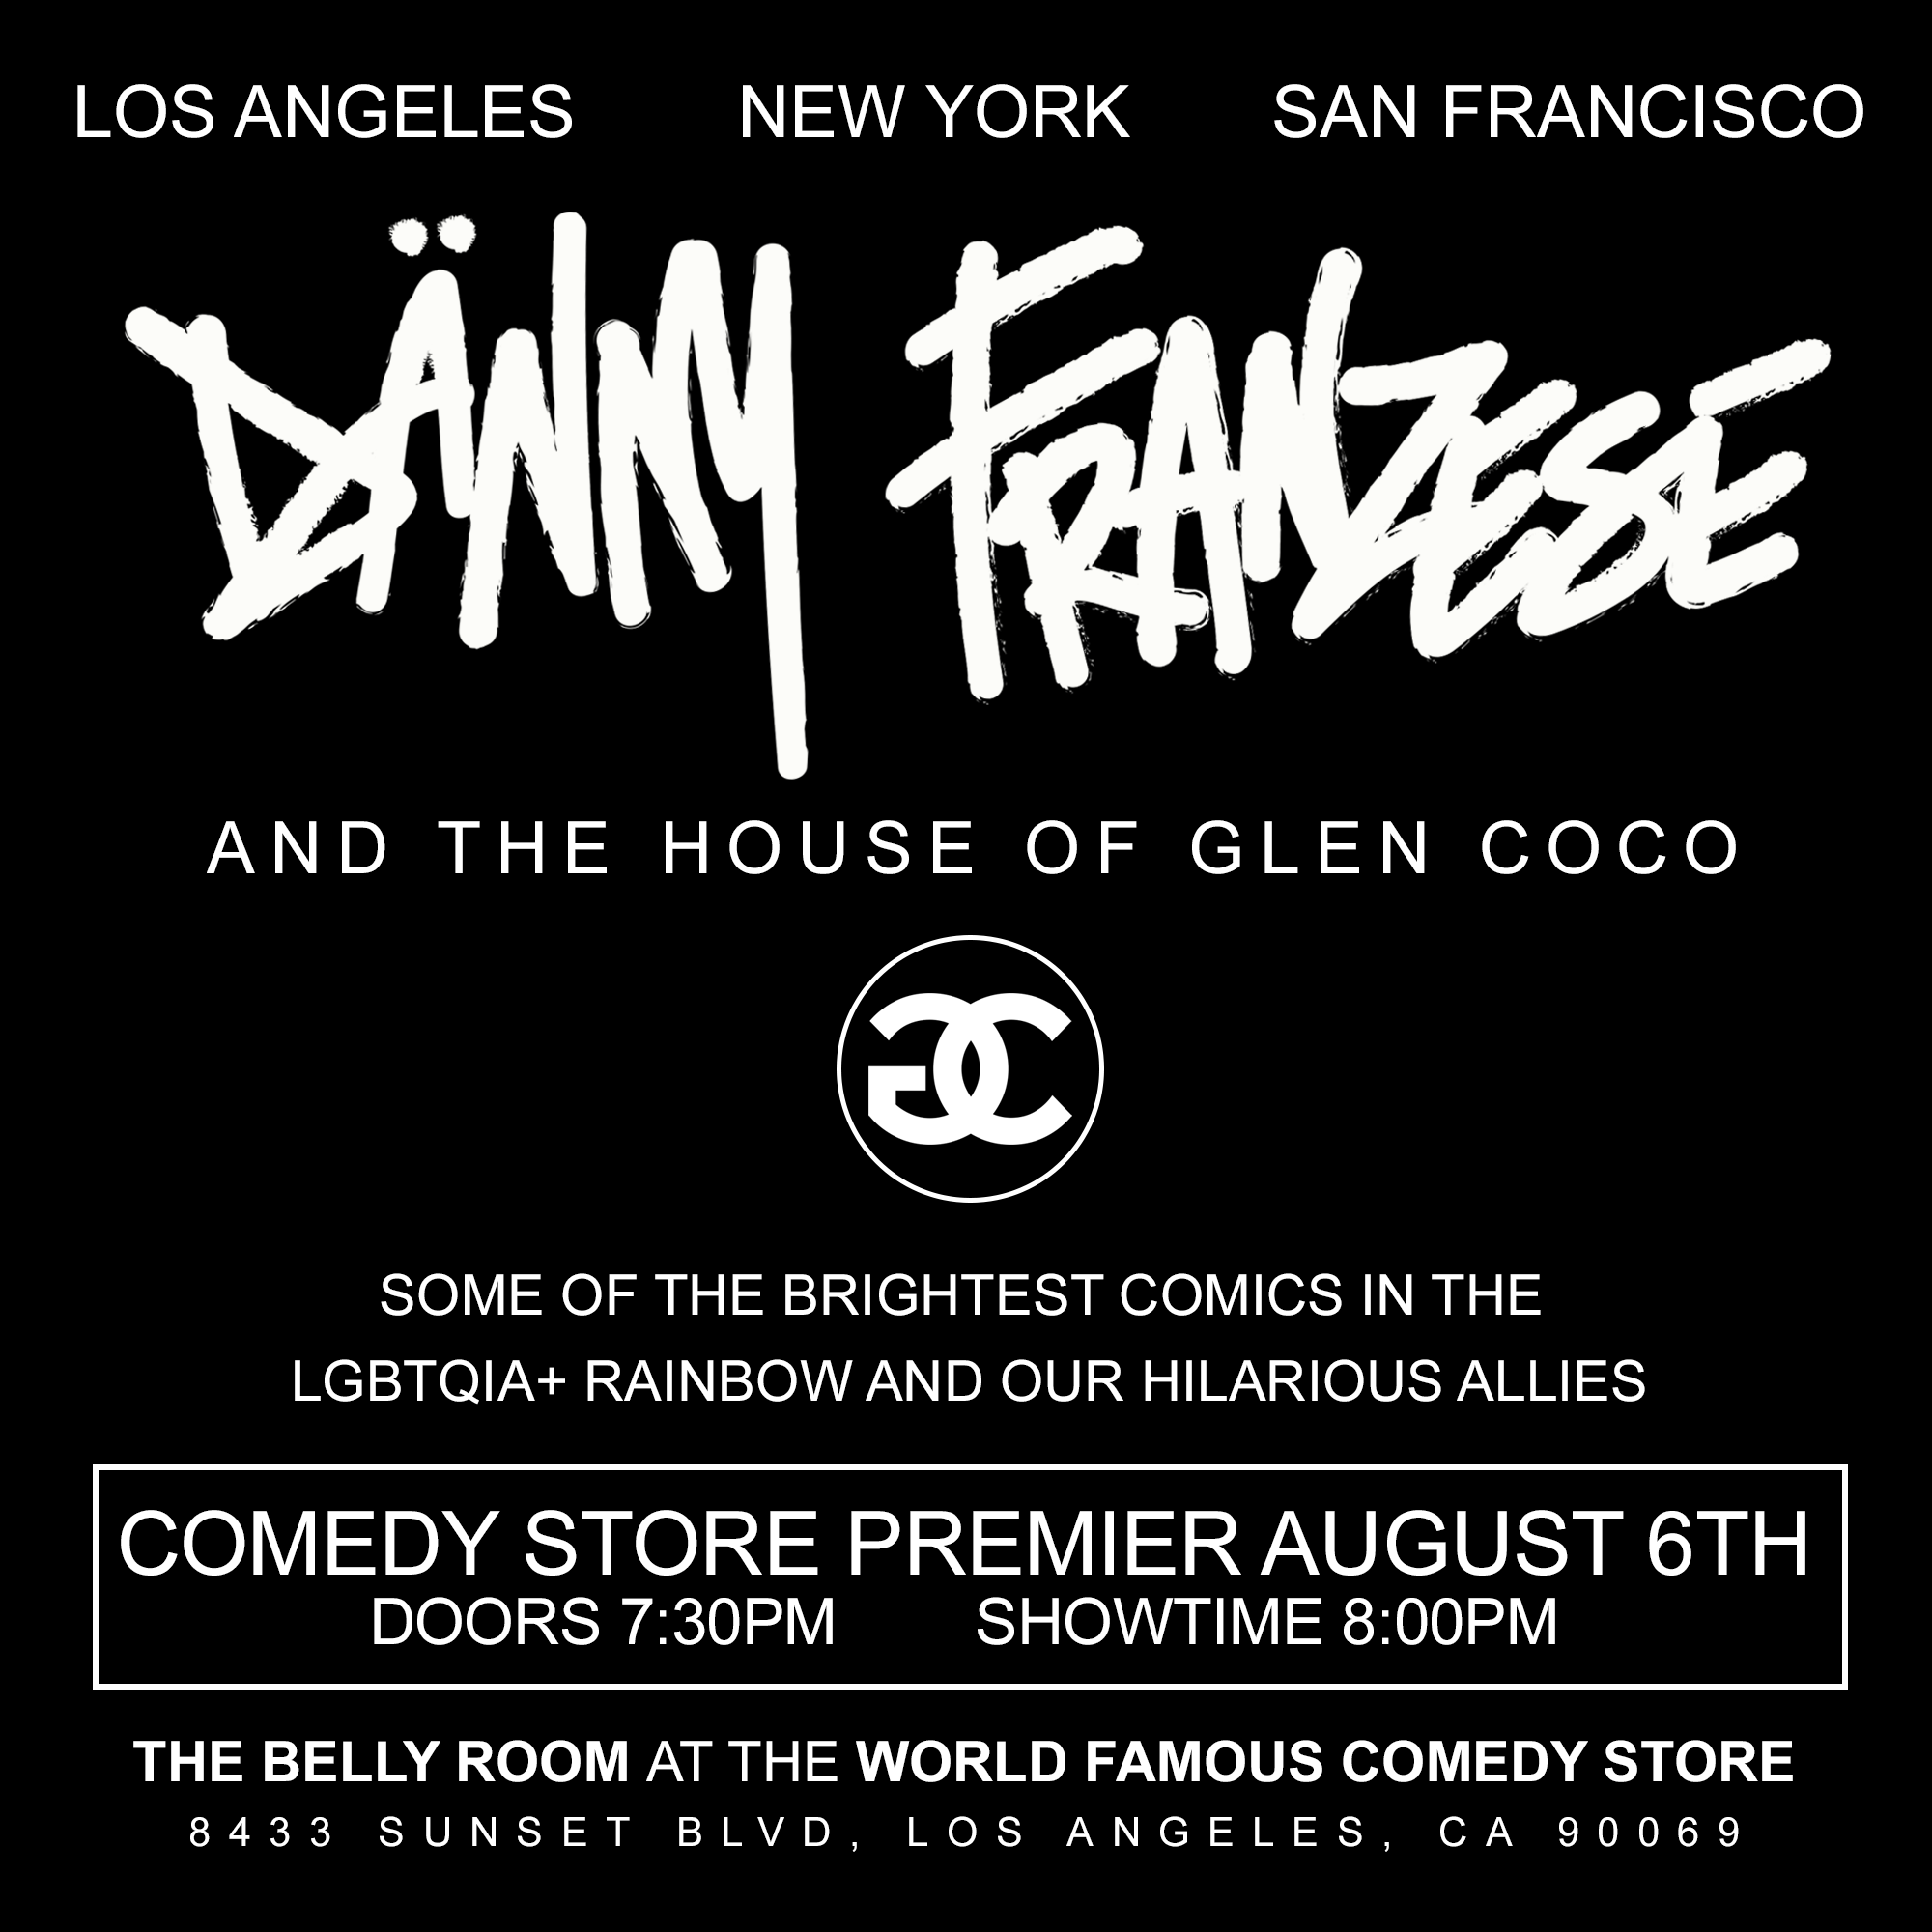 Danny Franzese and The House Of Glen Coco